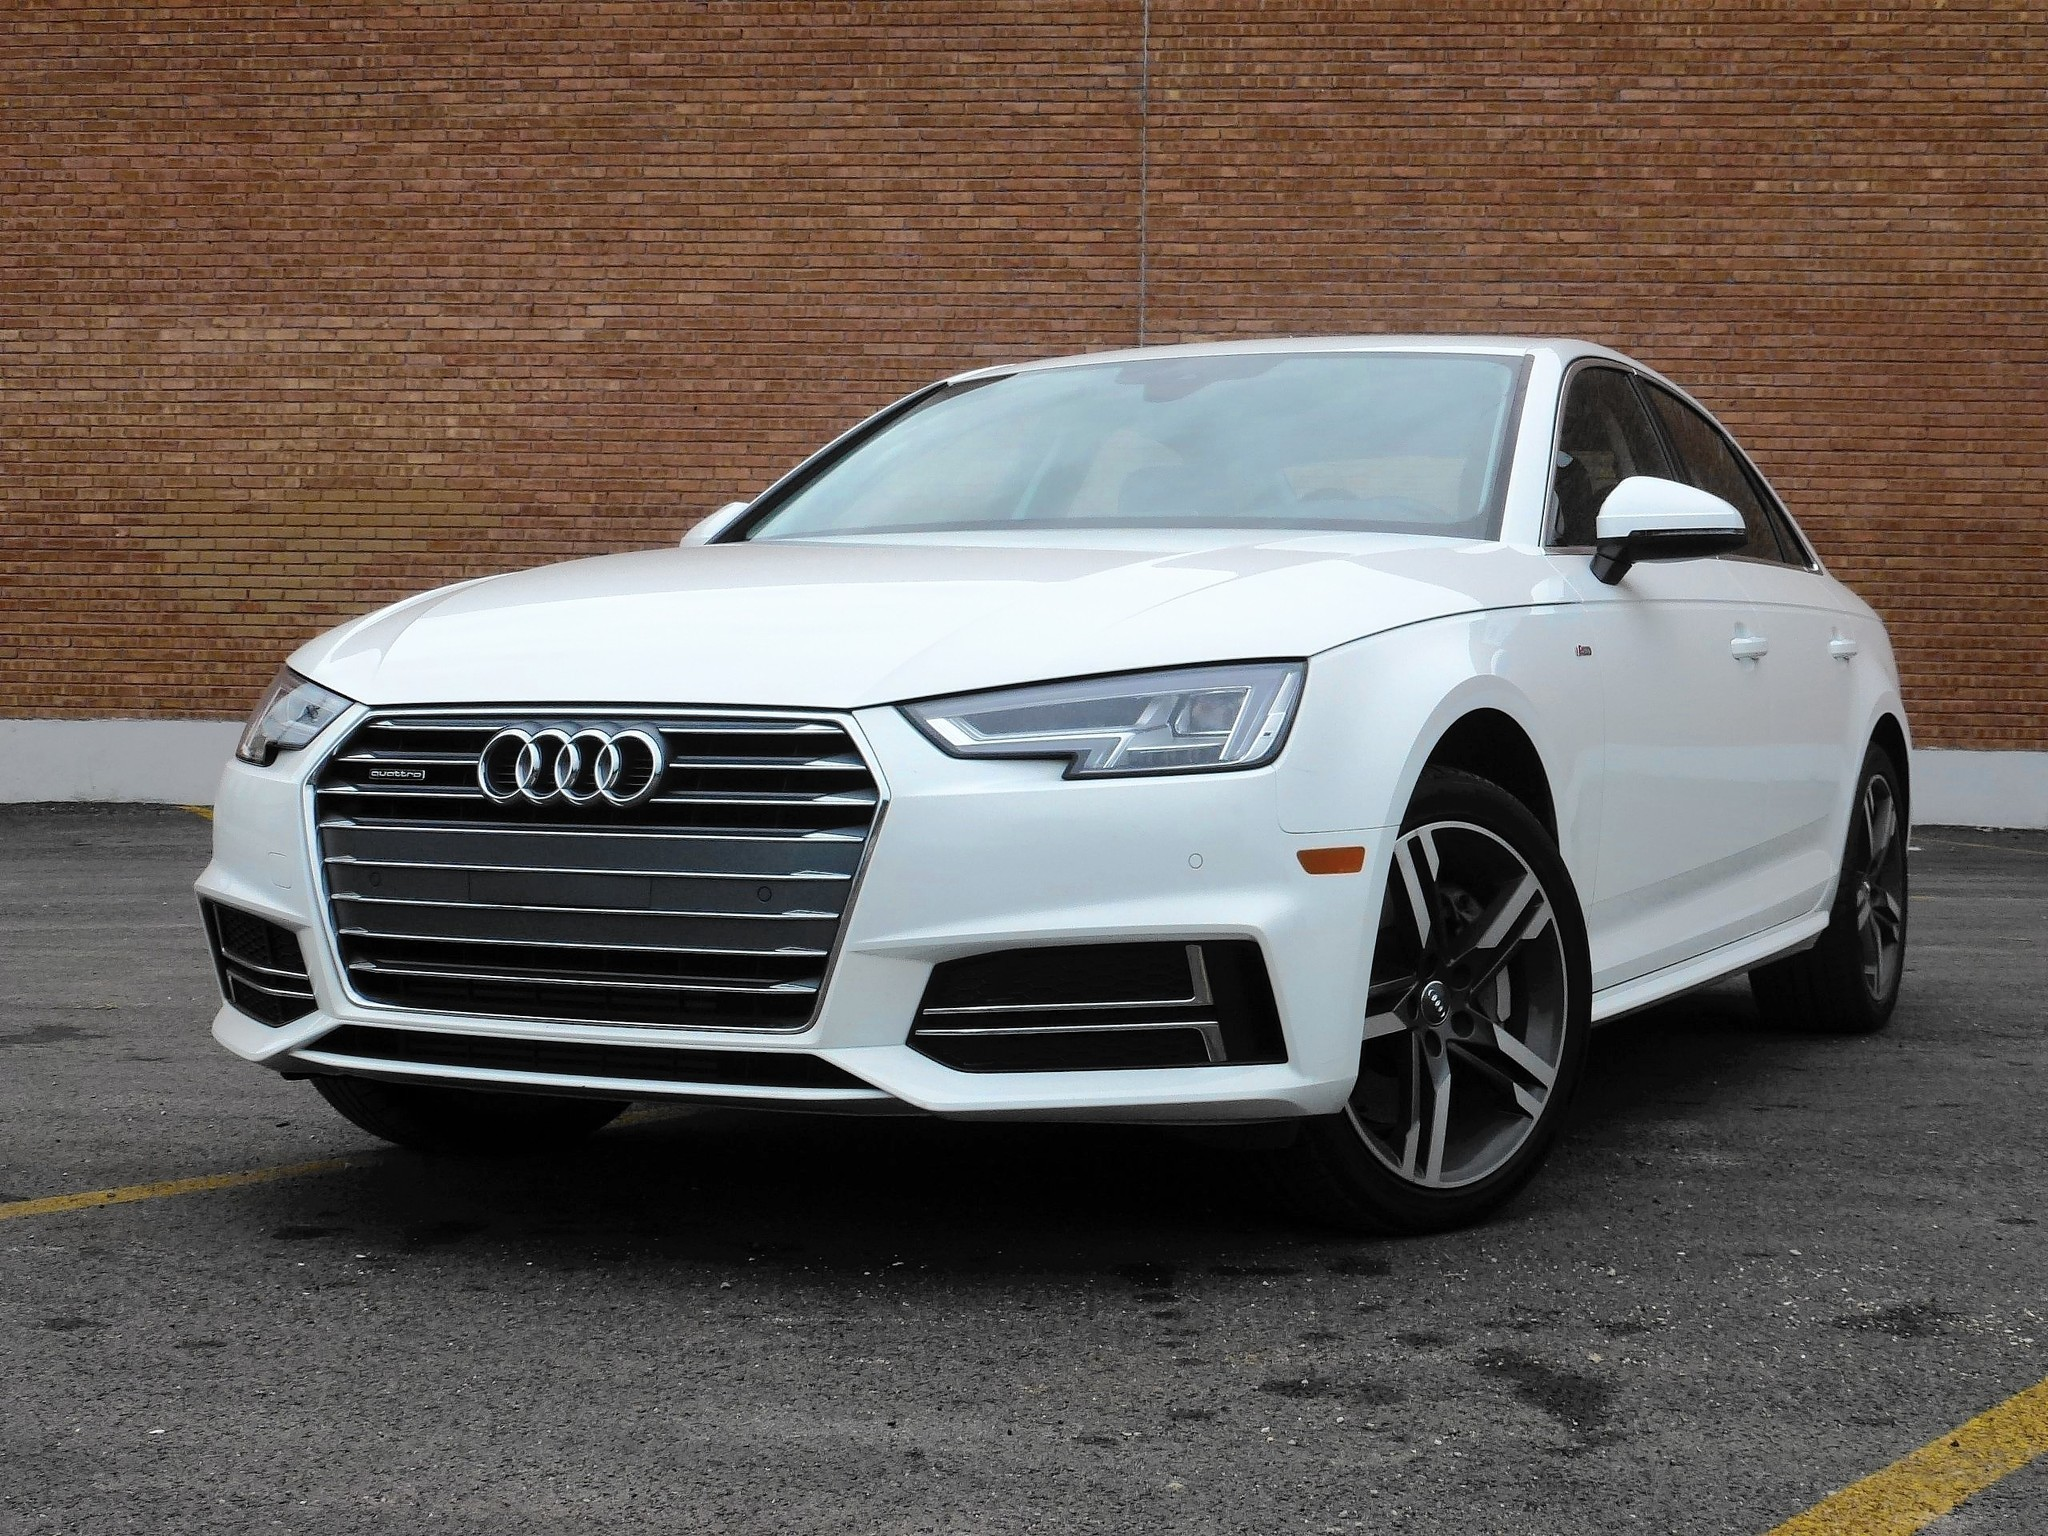 2017 Audi A4 quattro S - Chicago Tribune